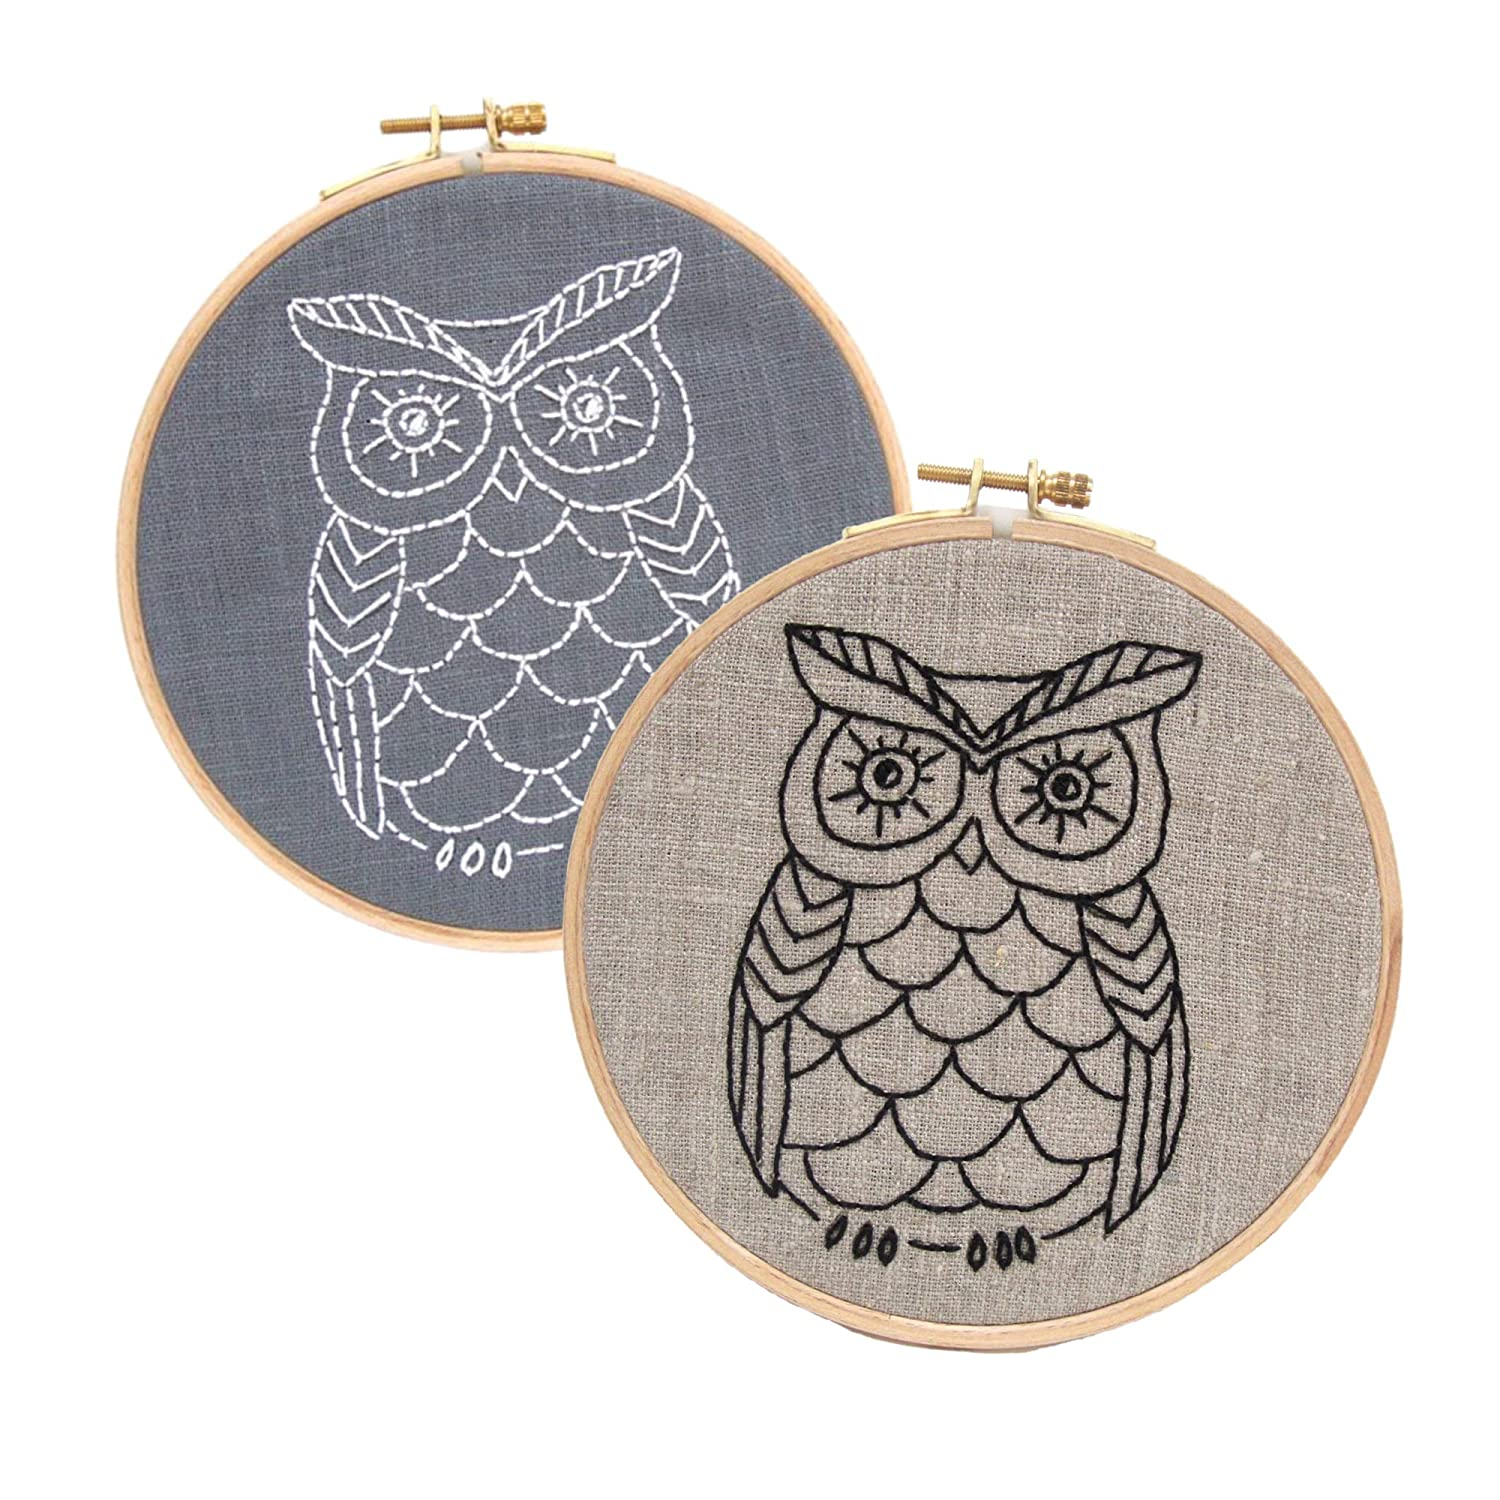 Owl Embroidery Kit Max 50% OFF Special sale item